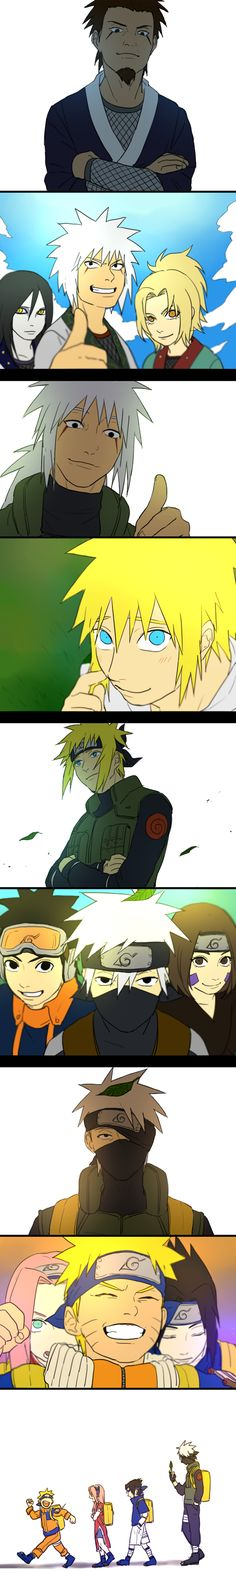 Team 7 Generations - The history of Team 7.  They have bad karma, hell yeah.